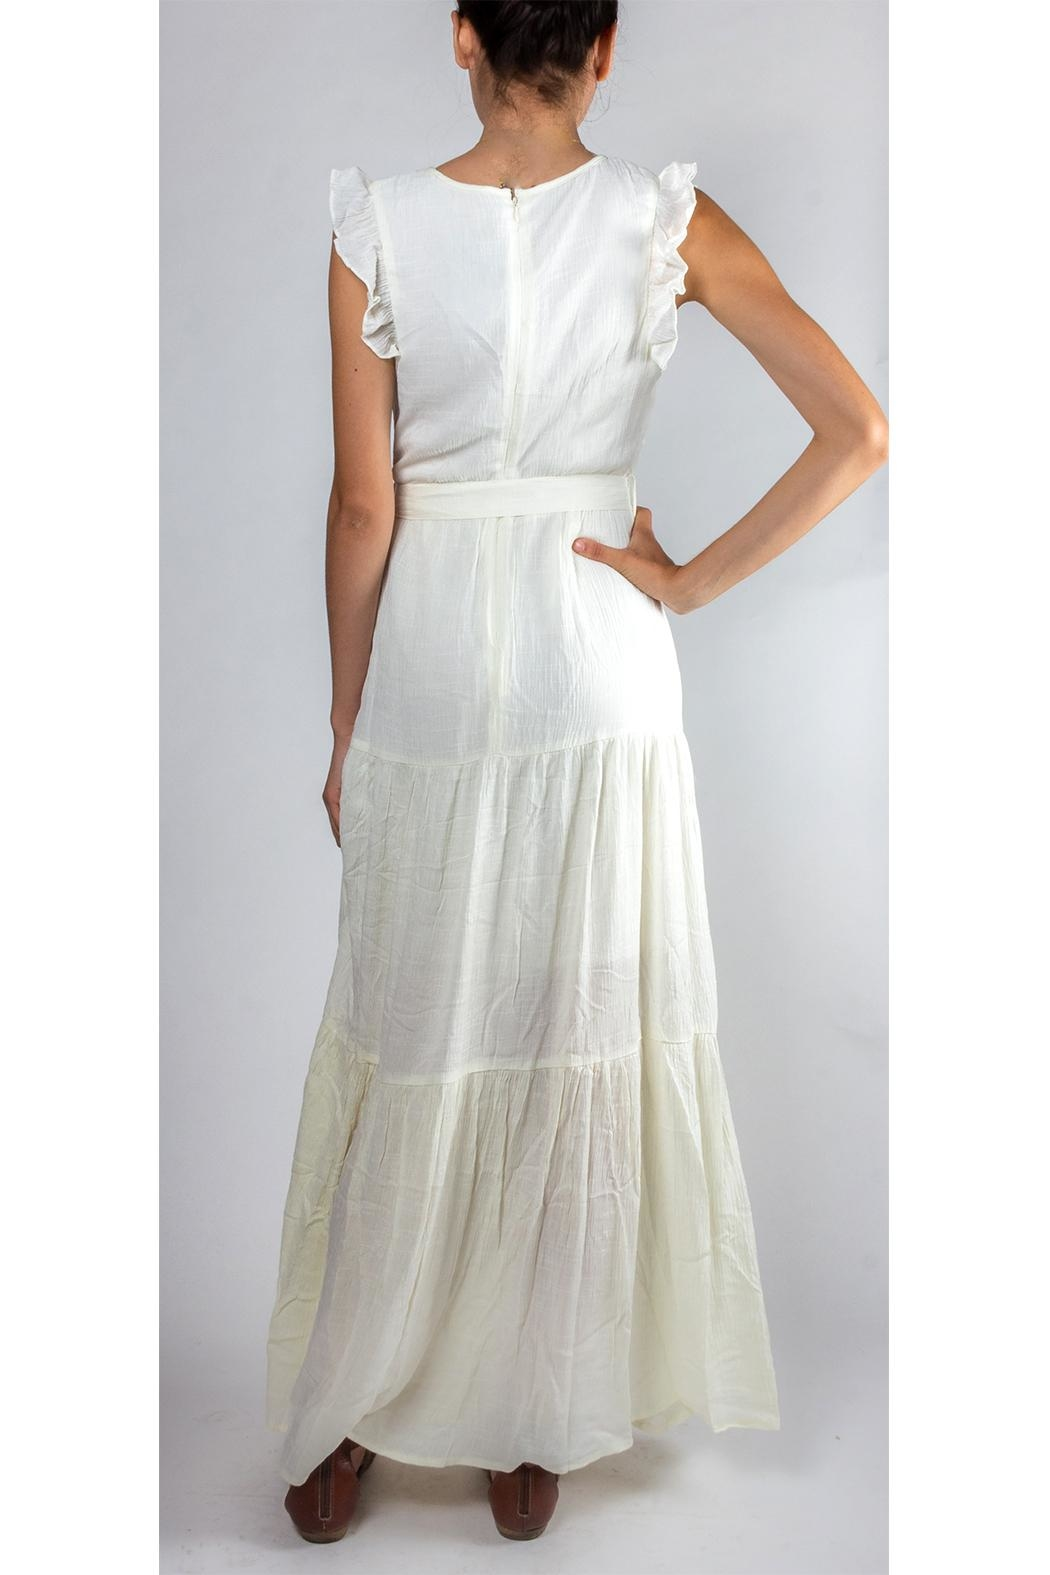 Gilli Ruffled Tie-Waist Maxi-Dress - Back Cropped Image